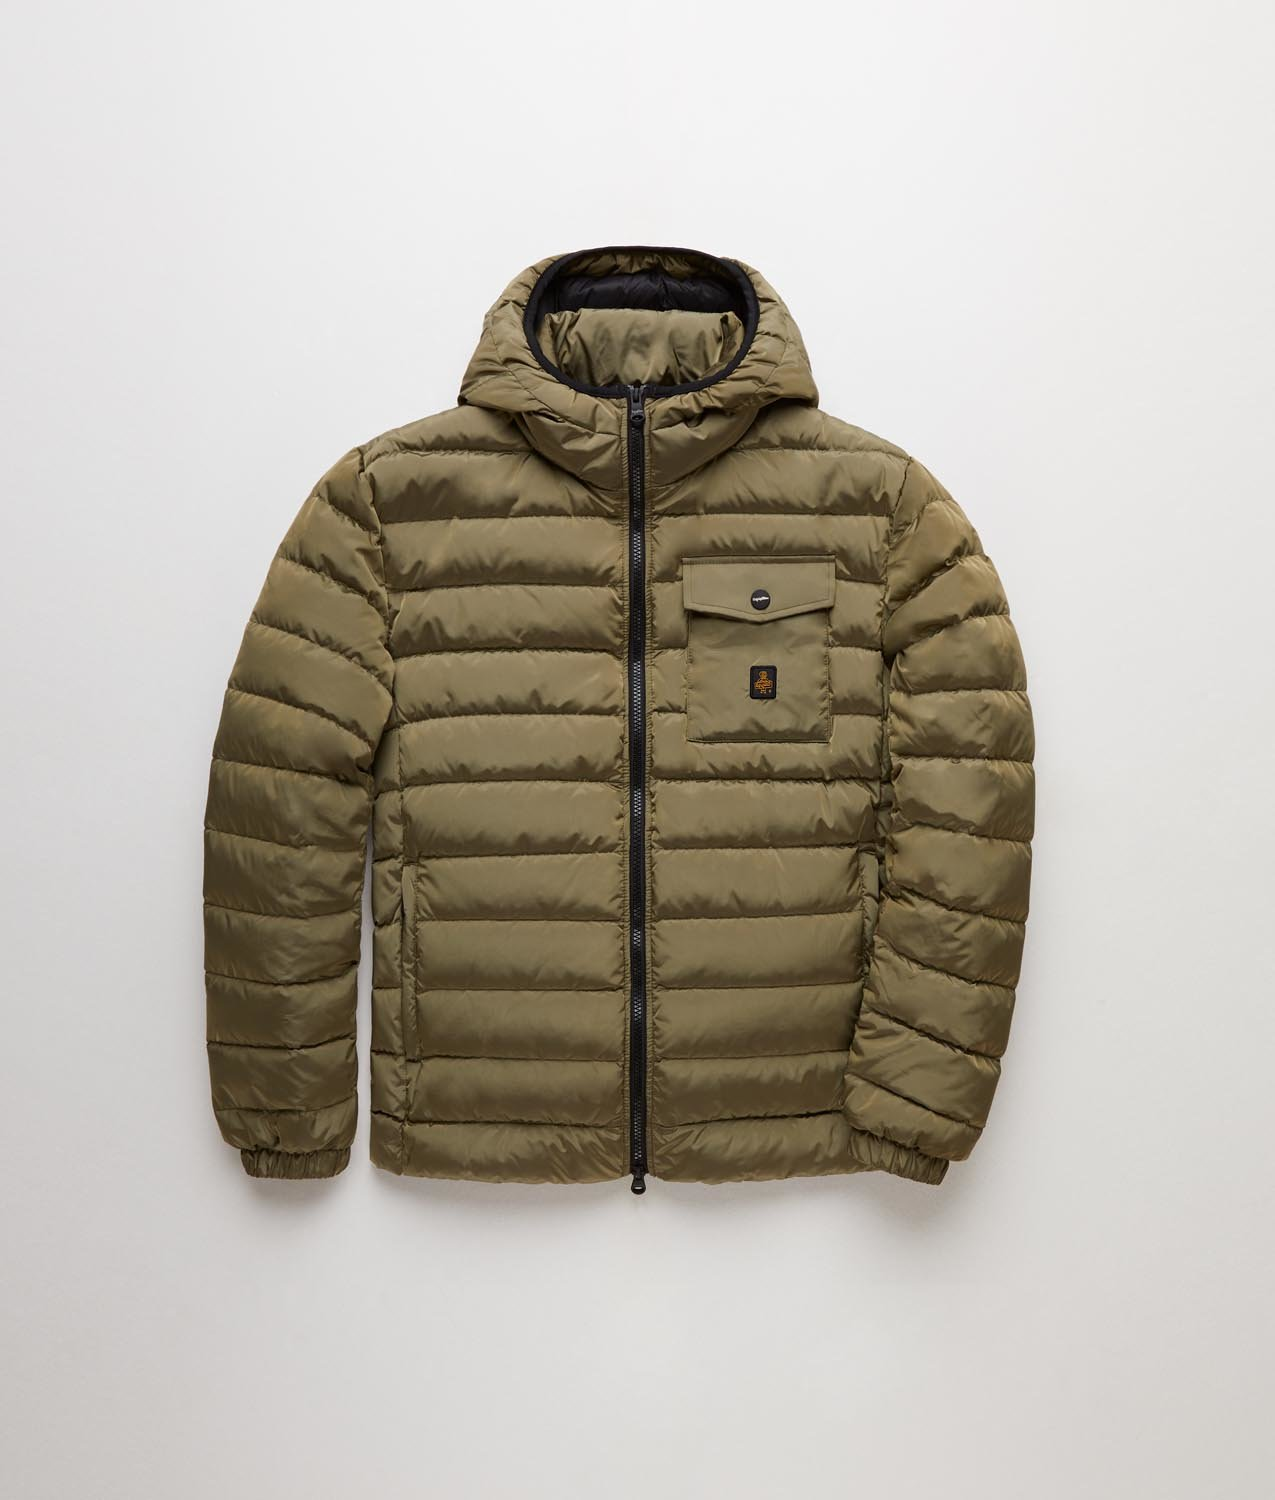 HUNTER/1 JACKET